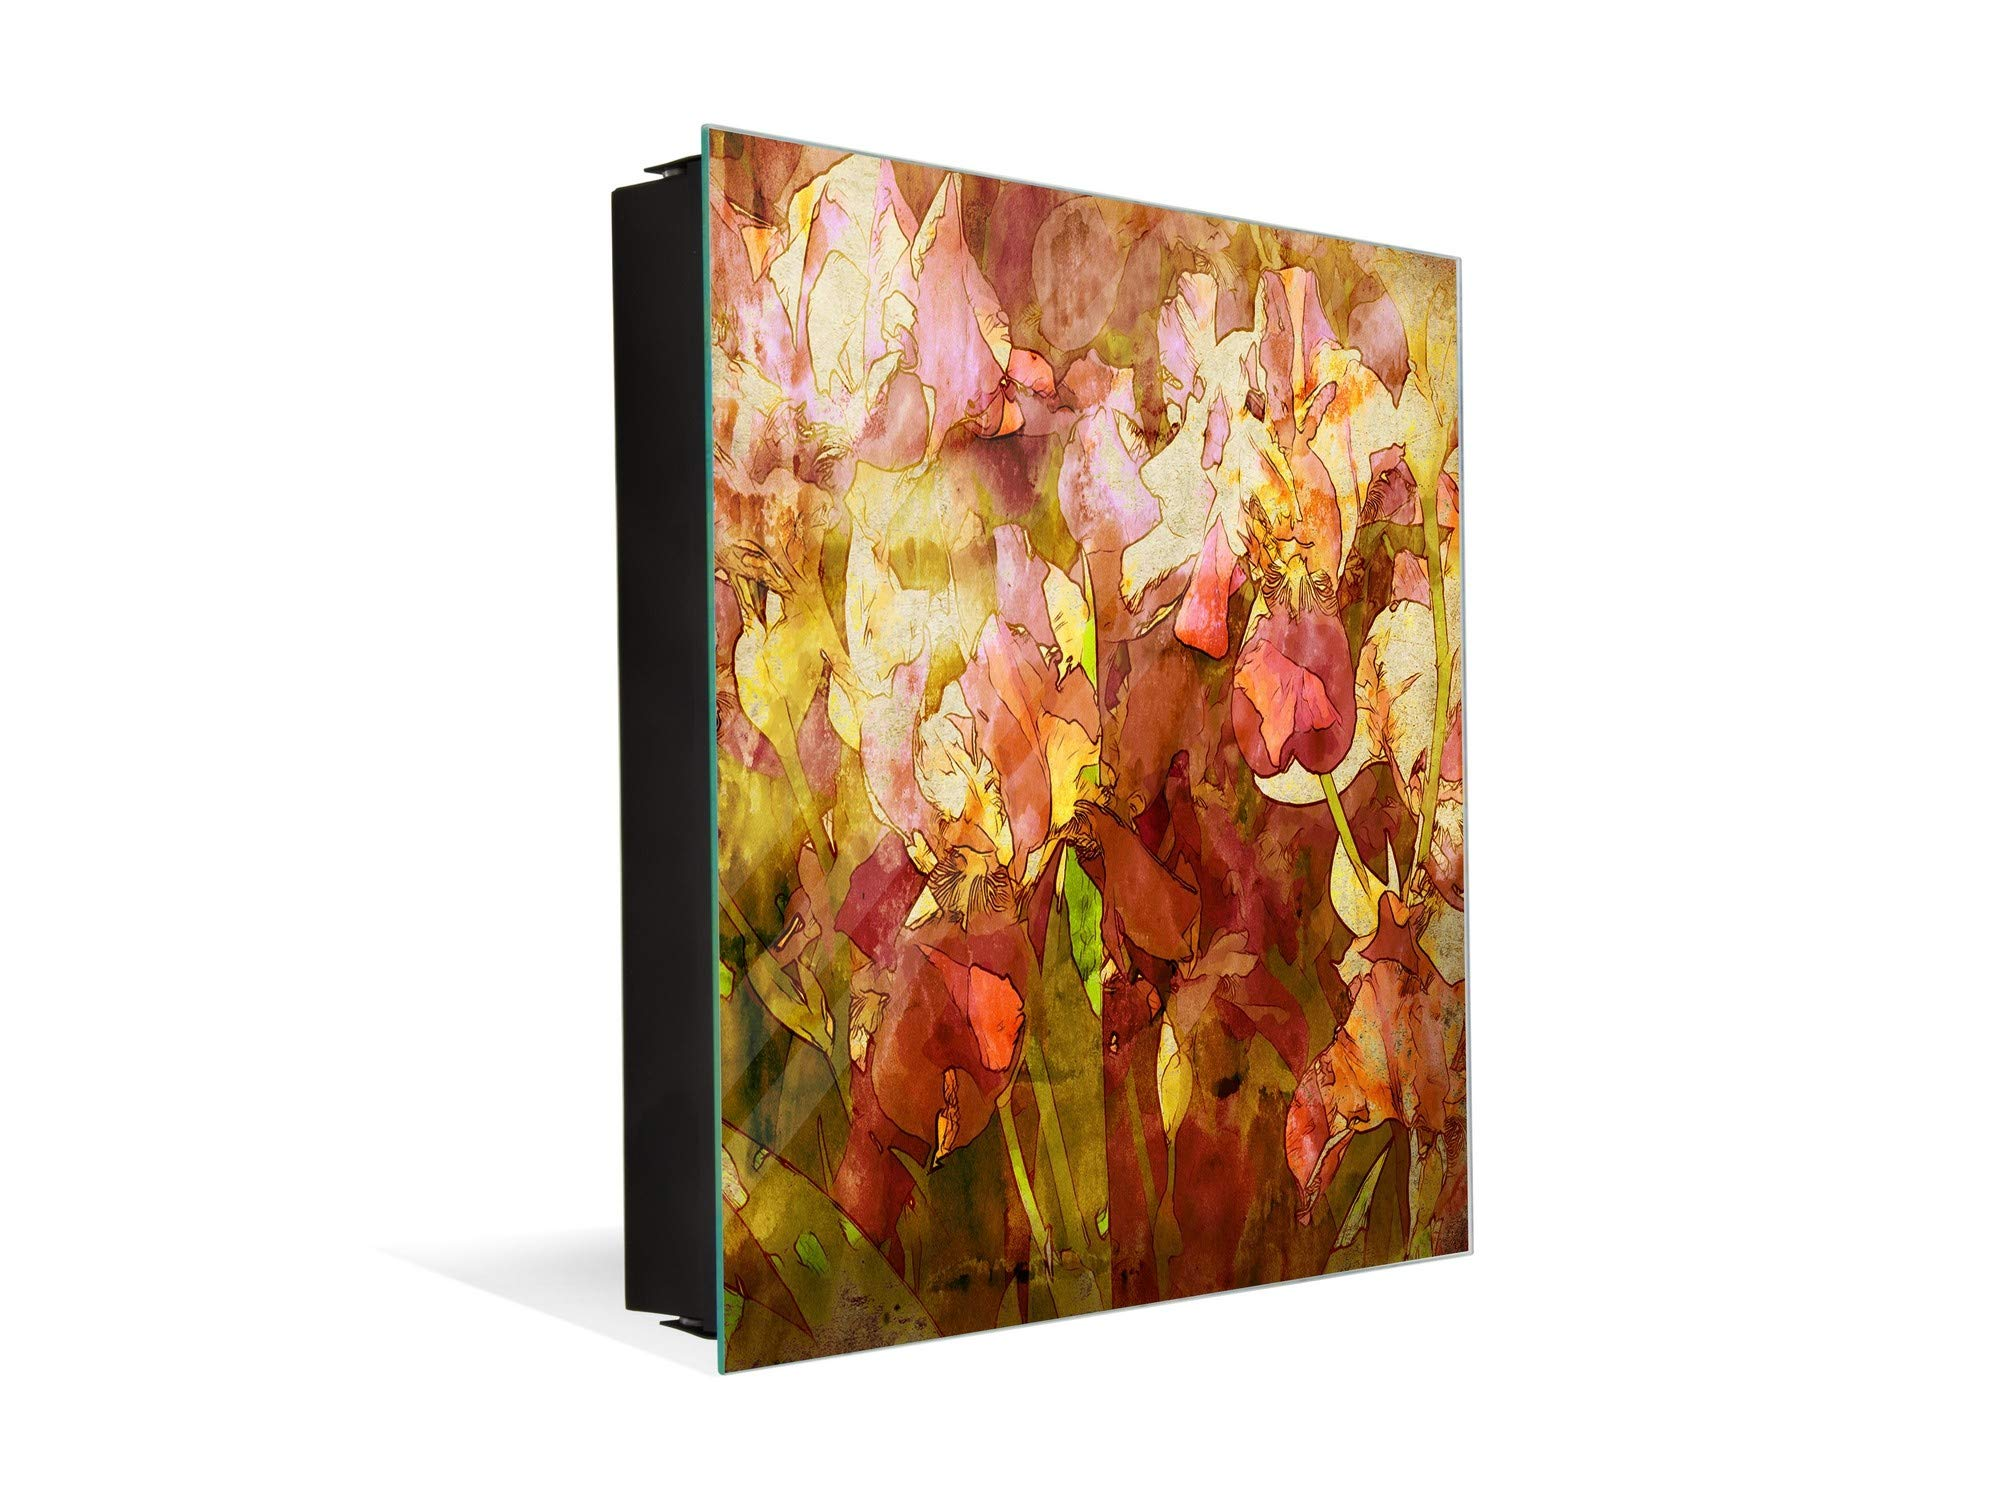 Wall Mount Key Box Together with Decorative Dry Erase Board K14 Worldly Motives: Orchids